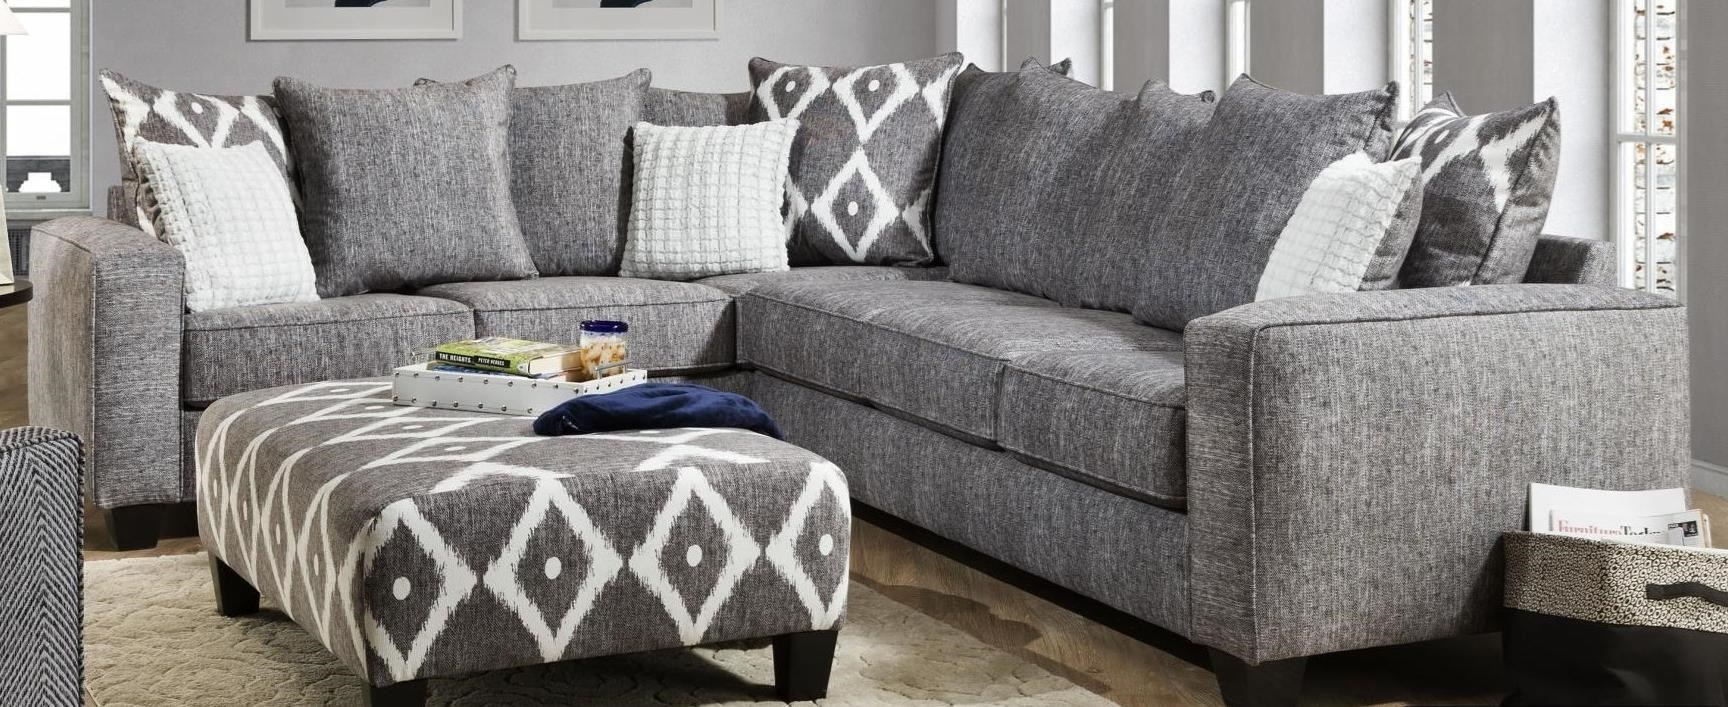 Albany Stonewash Contemporary 2 Piece Sectional In Gray Fabric Royal Furniture Sectional Sofas